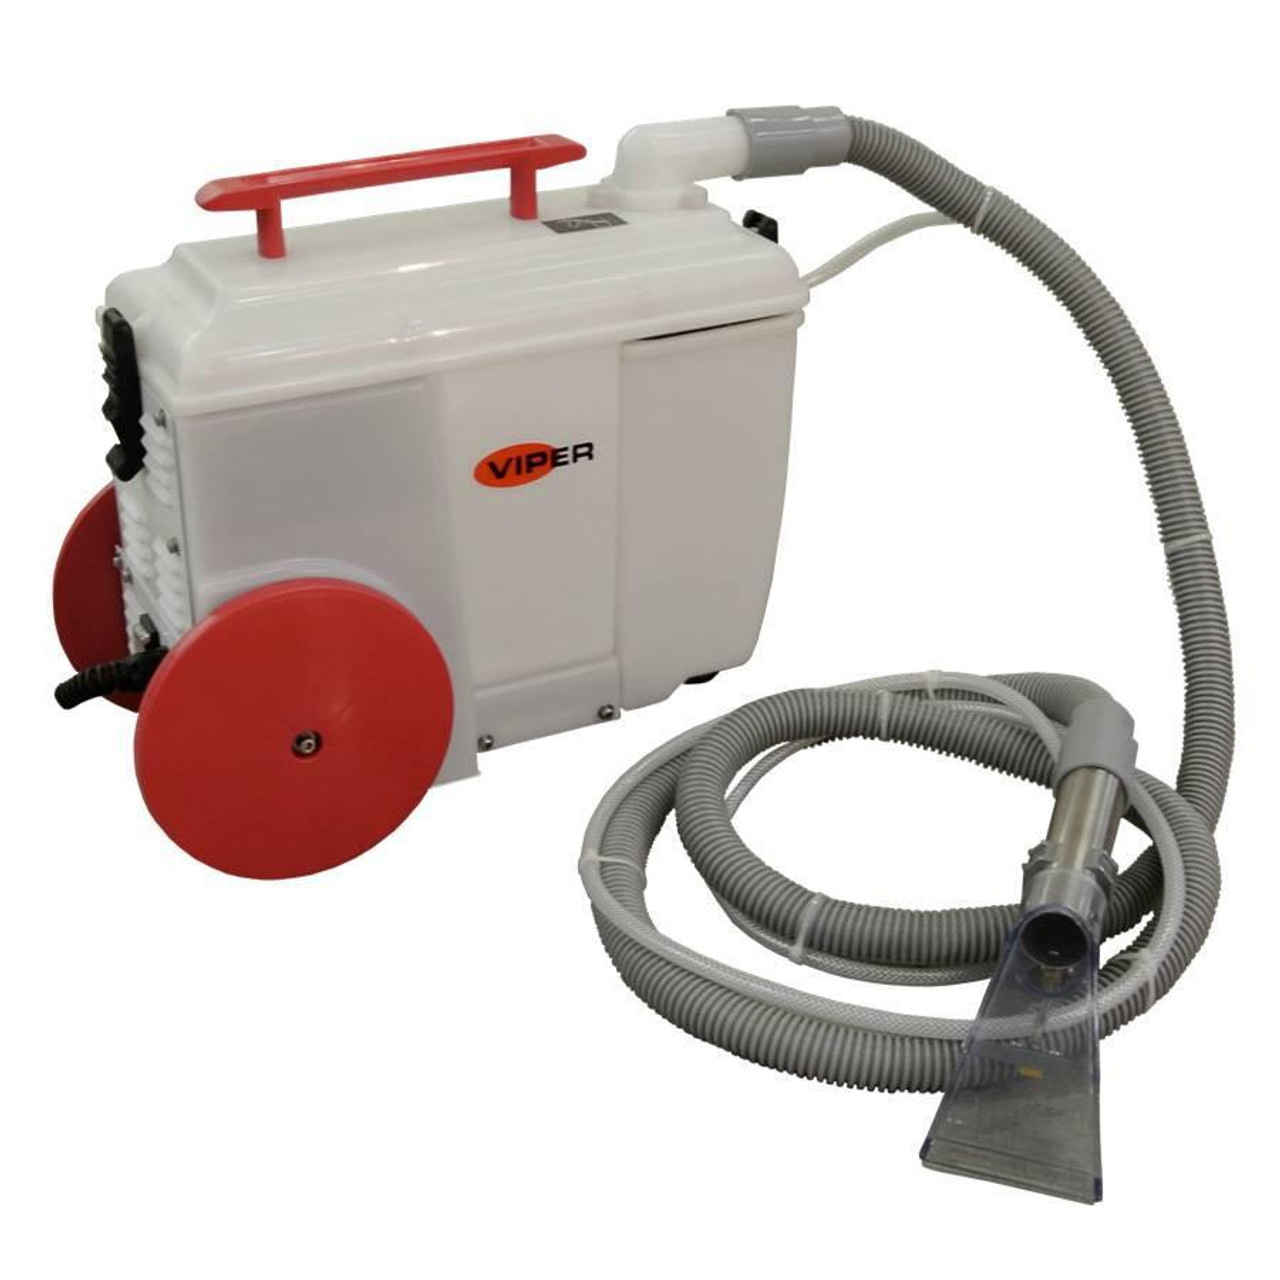 Viper WOLF 130 - WOLF130 : 1-Gallon Portable Spotting Extractor